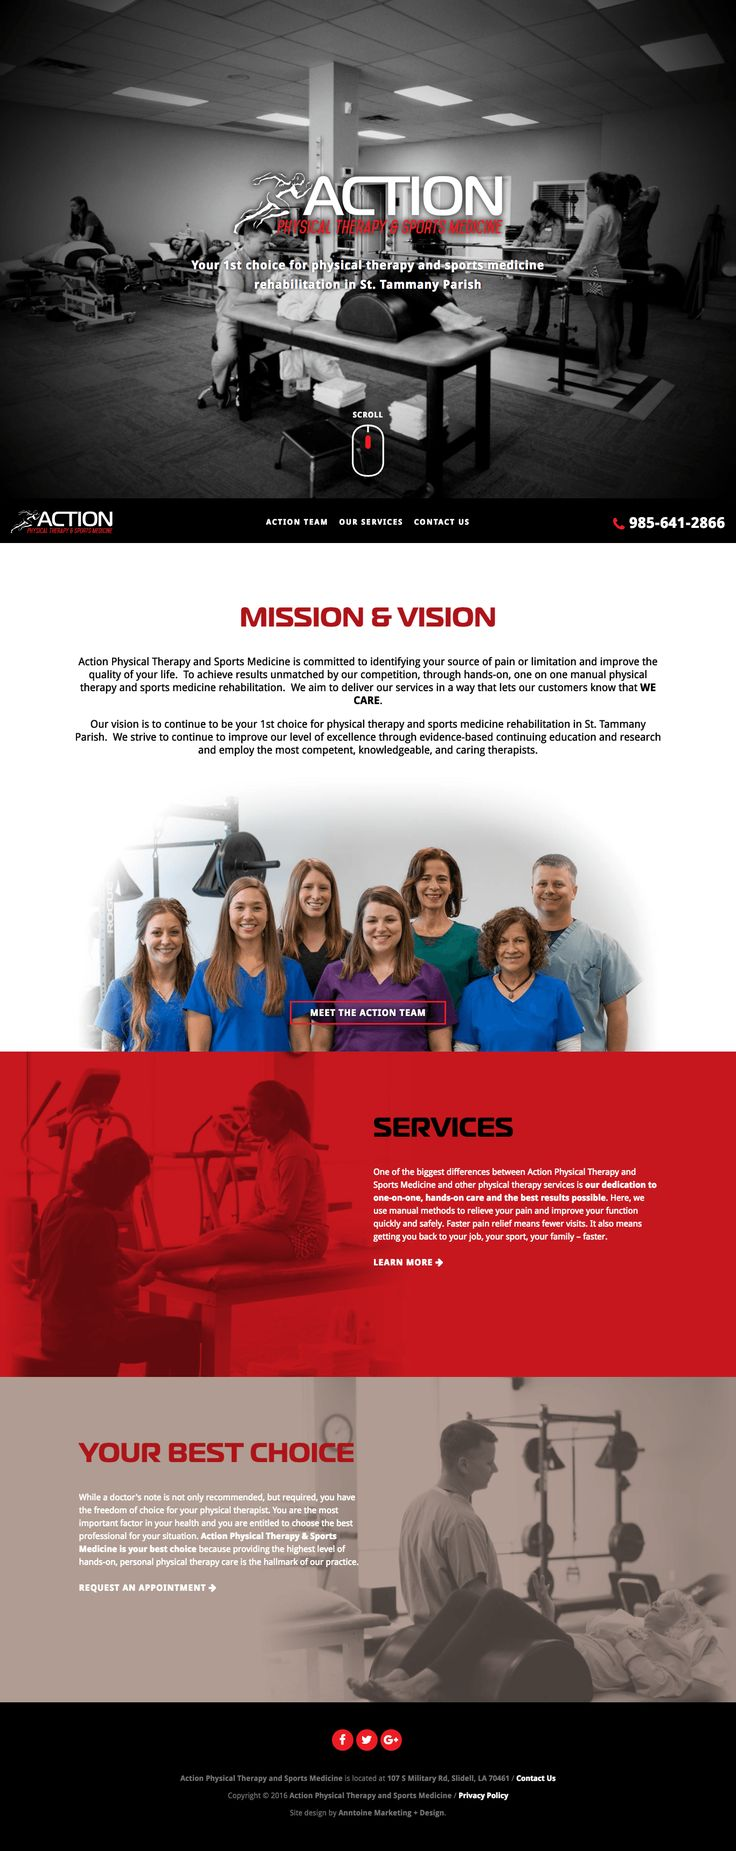 Web Design | Website Design | Responsive Website | Responsive Website Design | Fitness Website | Fitness Design | Custom Website Design | Custom Website | Healthy School Food Collaborative Website | Branded Website Design | Website Inspiration | Website Ideas | Web Design Ideas | Parallax Scrolling | Action Physical Therapy | Physical Therapy | Slidell, La | http://actionptslidell.com/